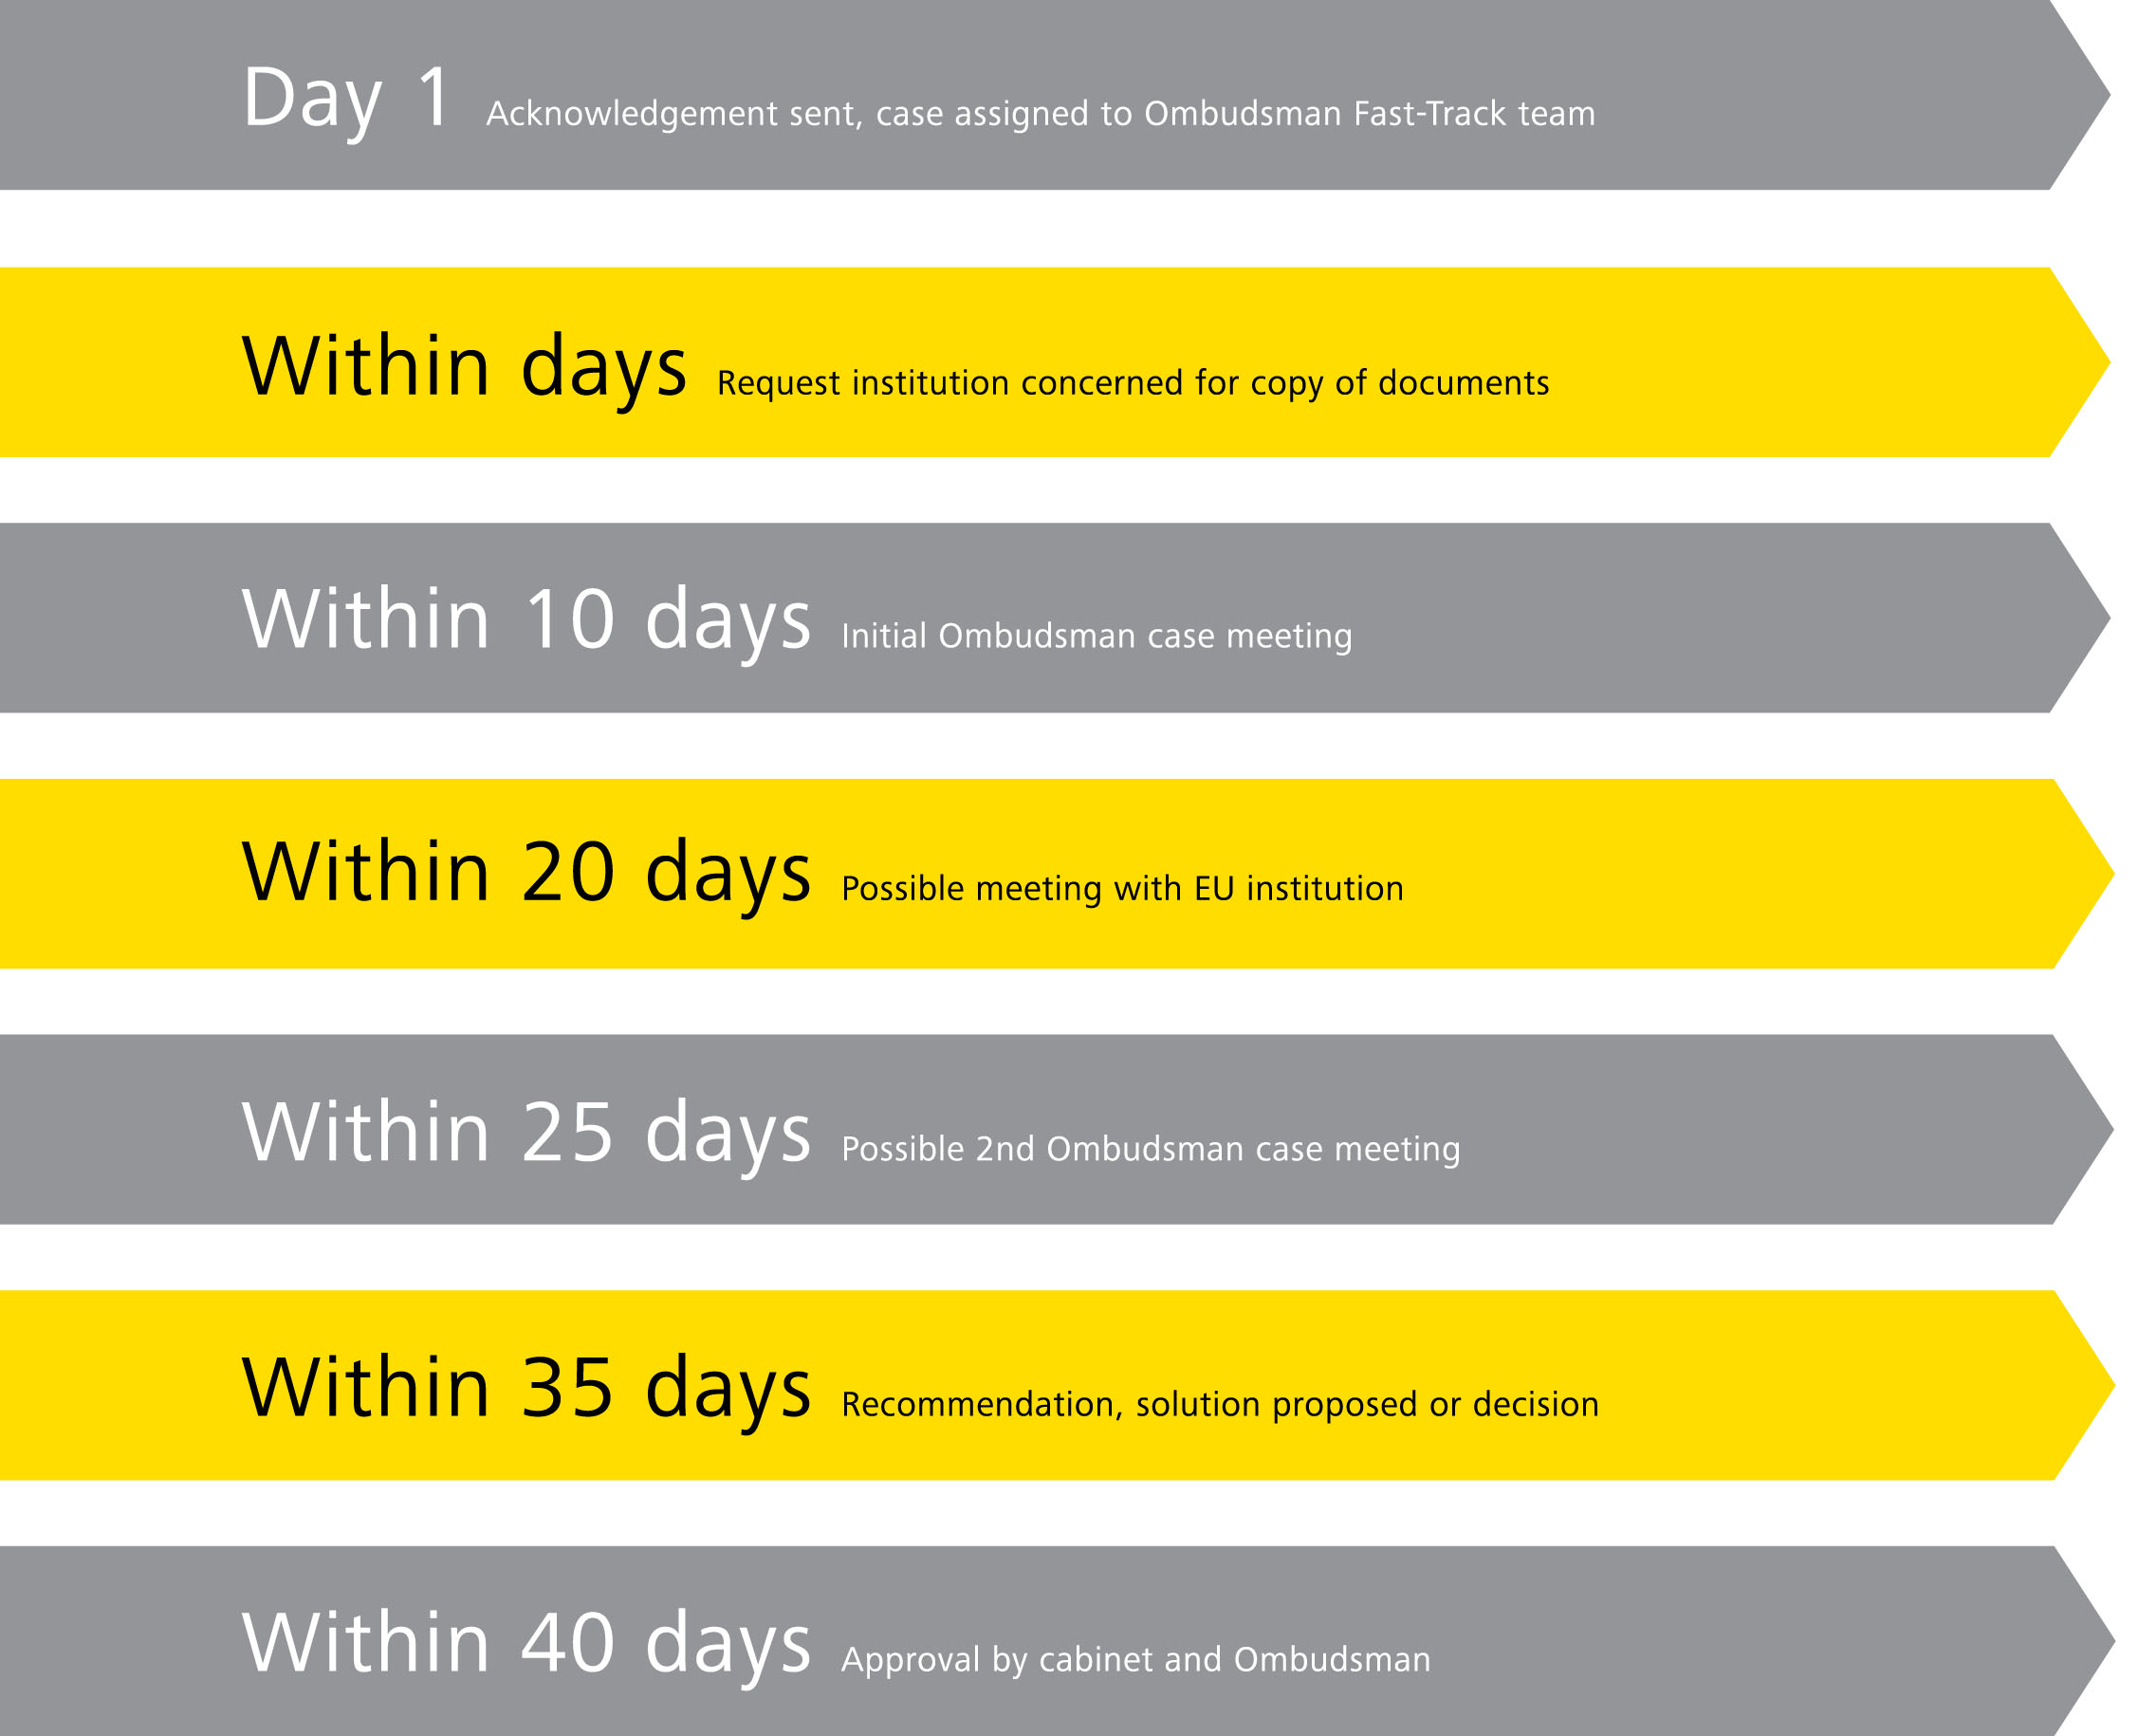 Access to documents complaints – Fast-Track timeline targets